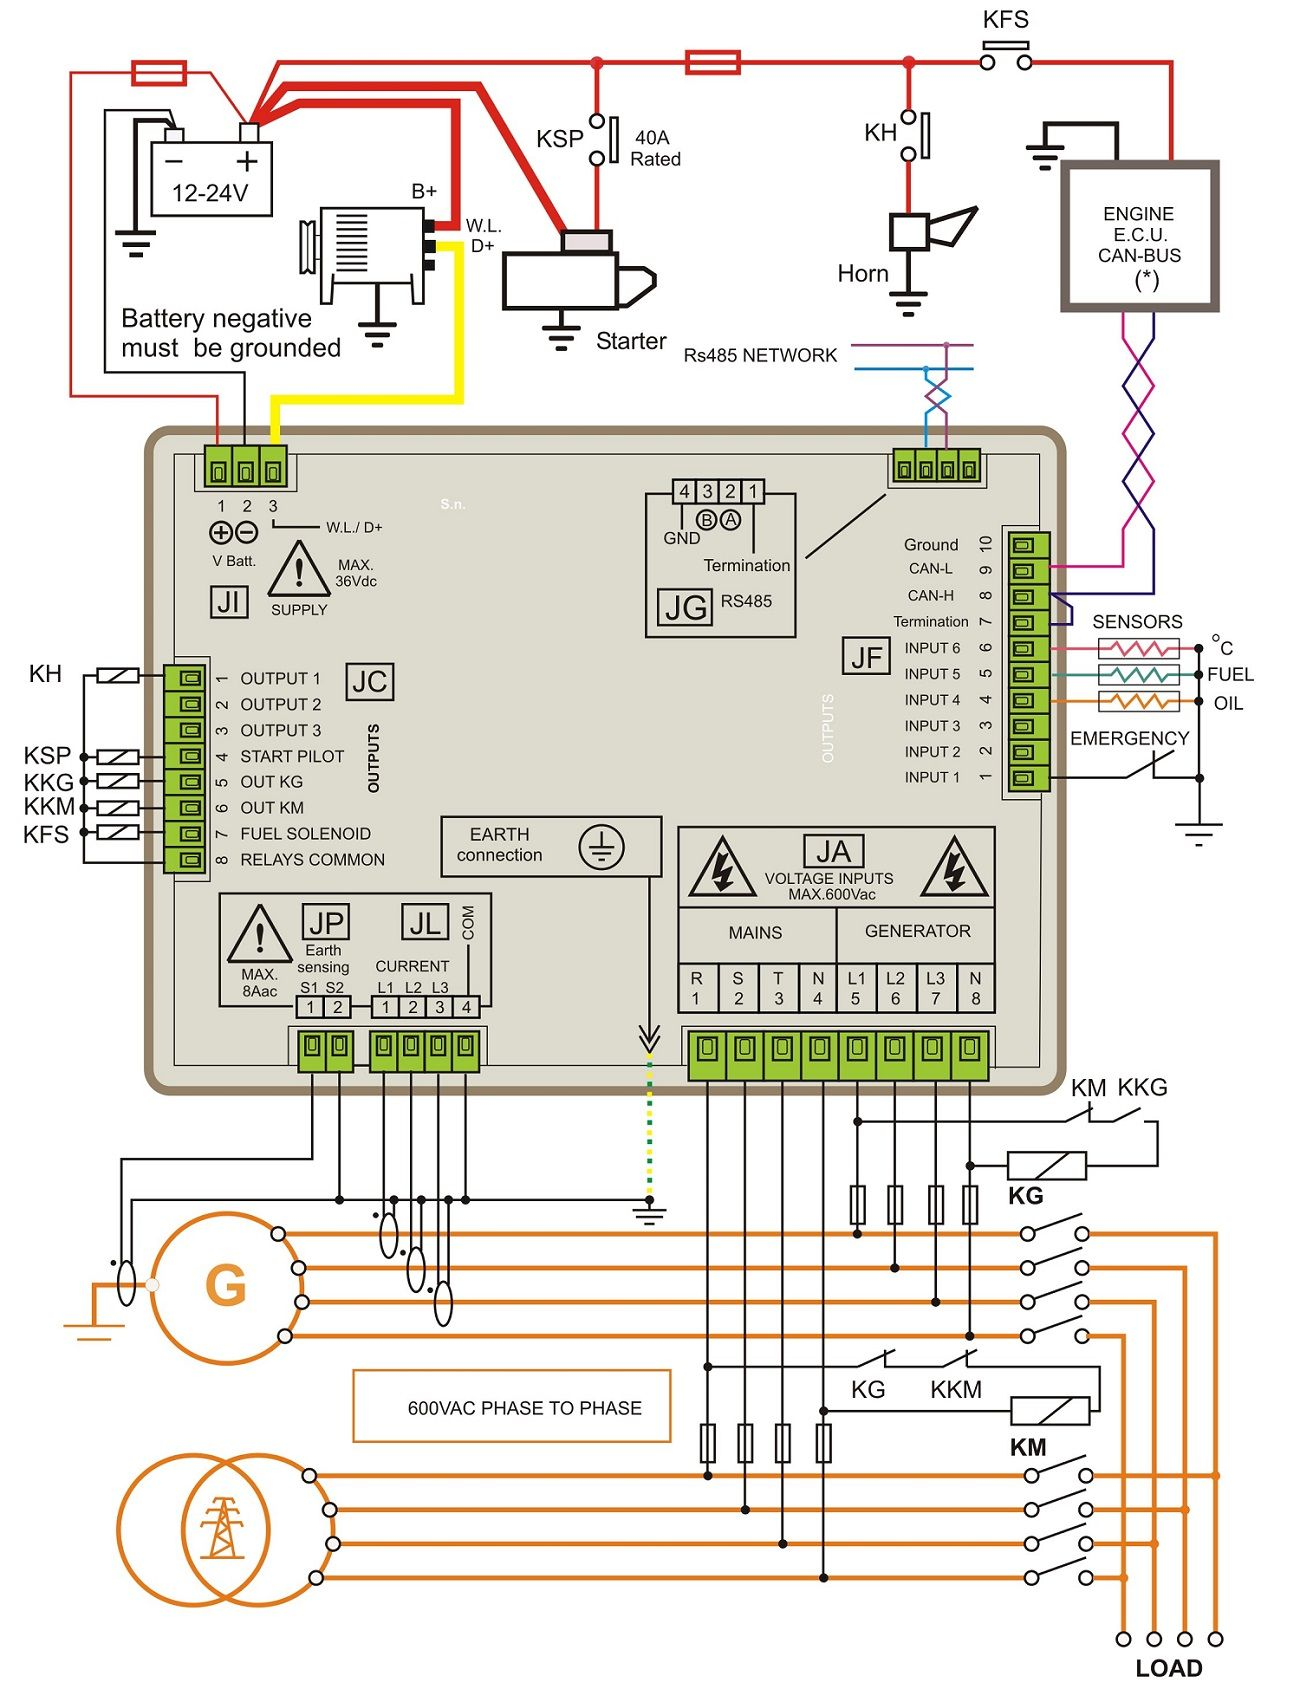 15c254873b870a838ee6709417678490 generator control panel for industrial applications diagram jpg automatic transfer switch wiring diagram free at bayanpartner.co